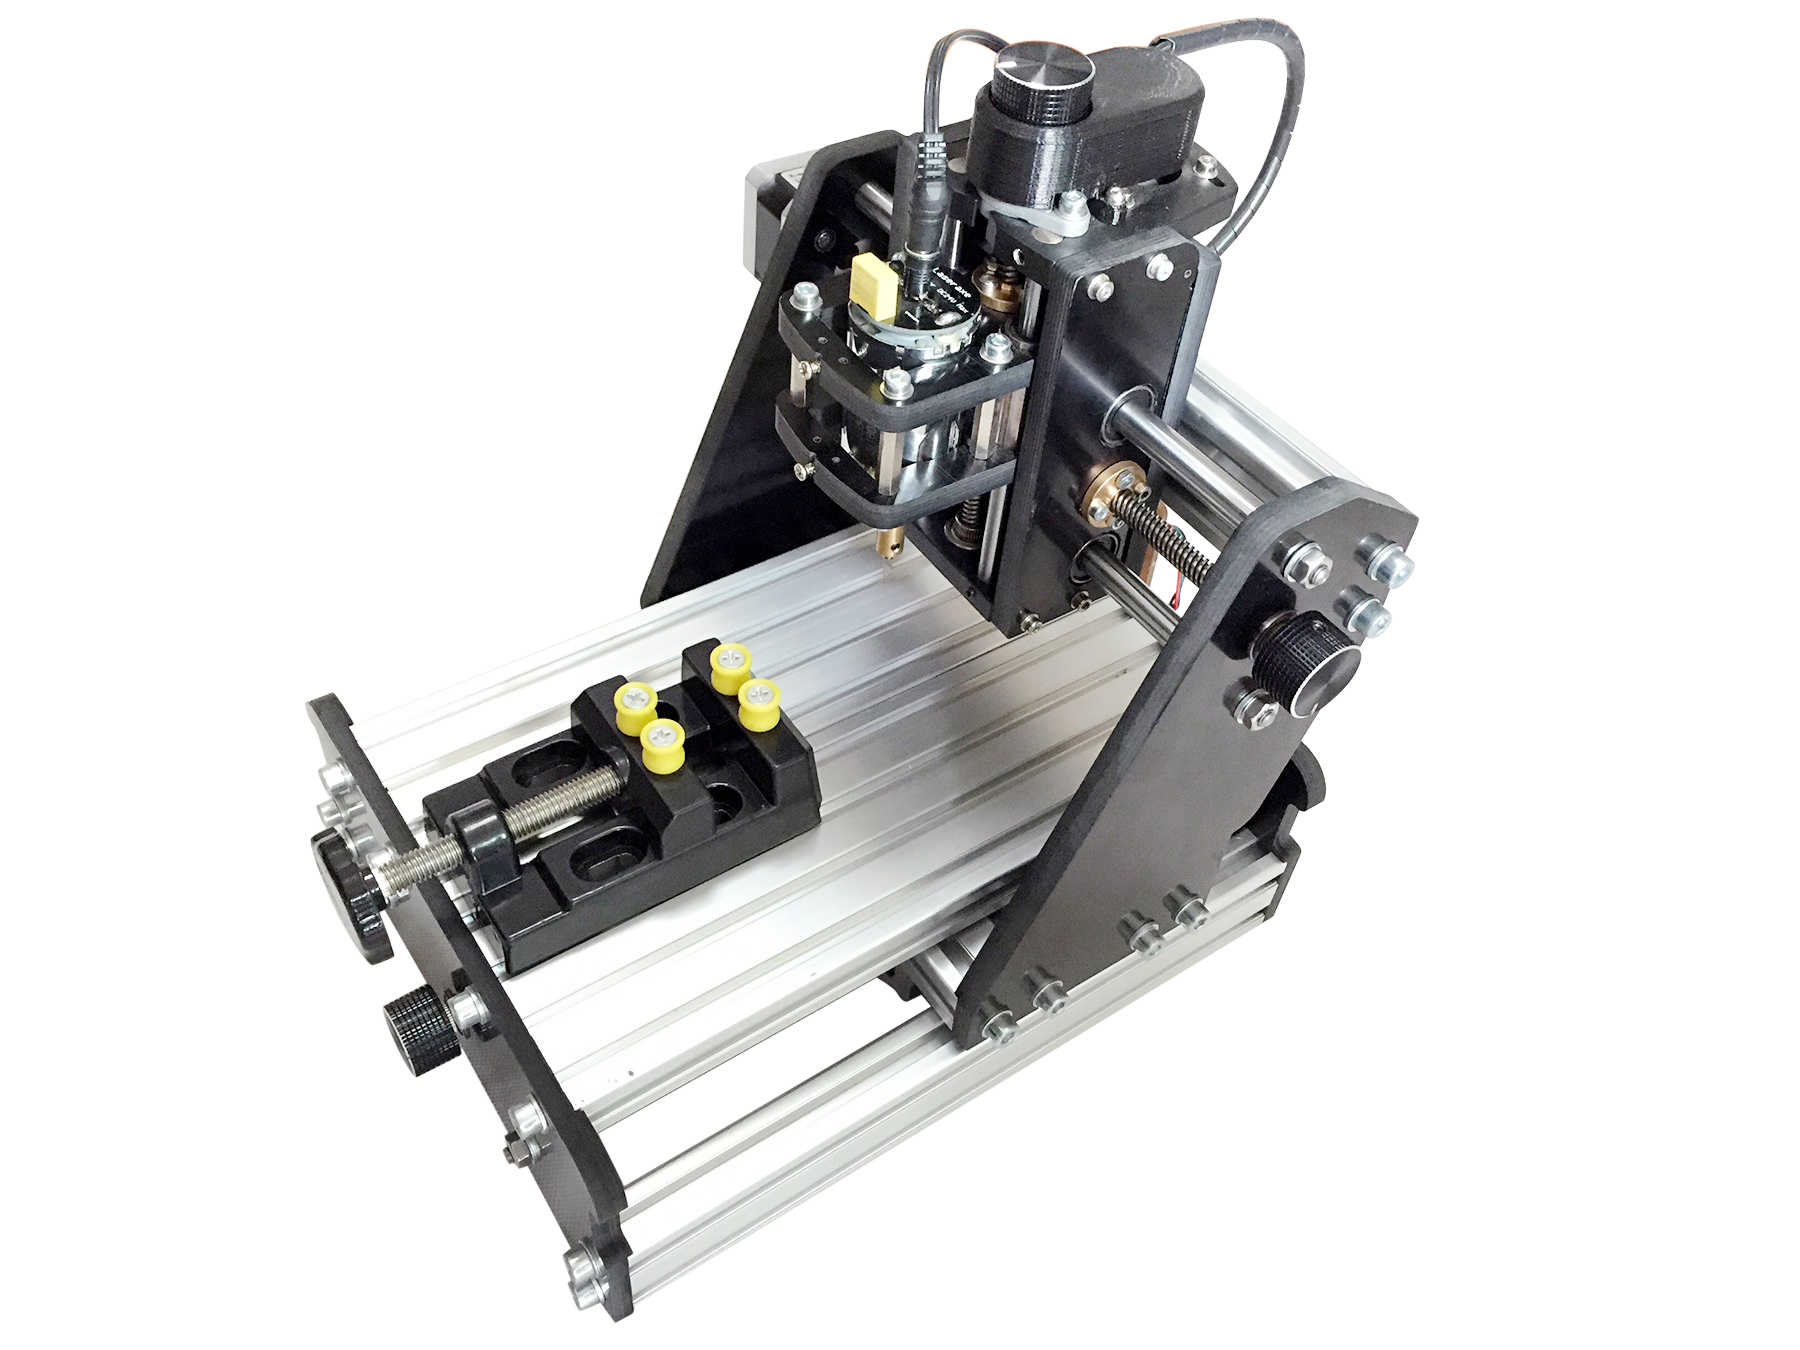 Cnc Mini Milling Engraving Machine 3 Axis Carving Desktop